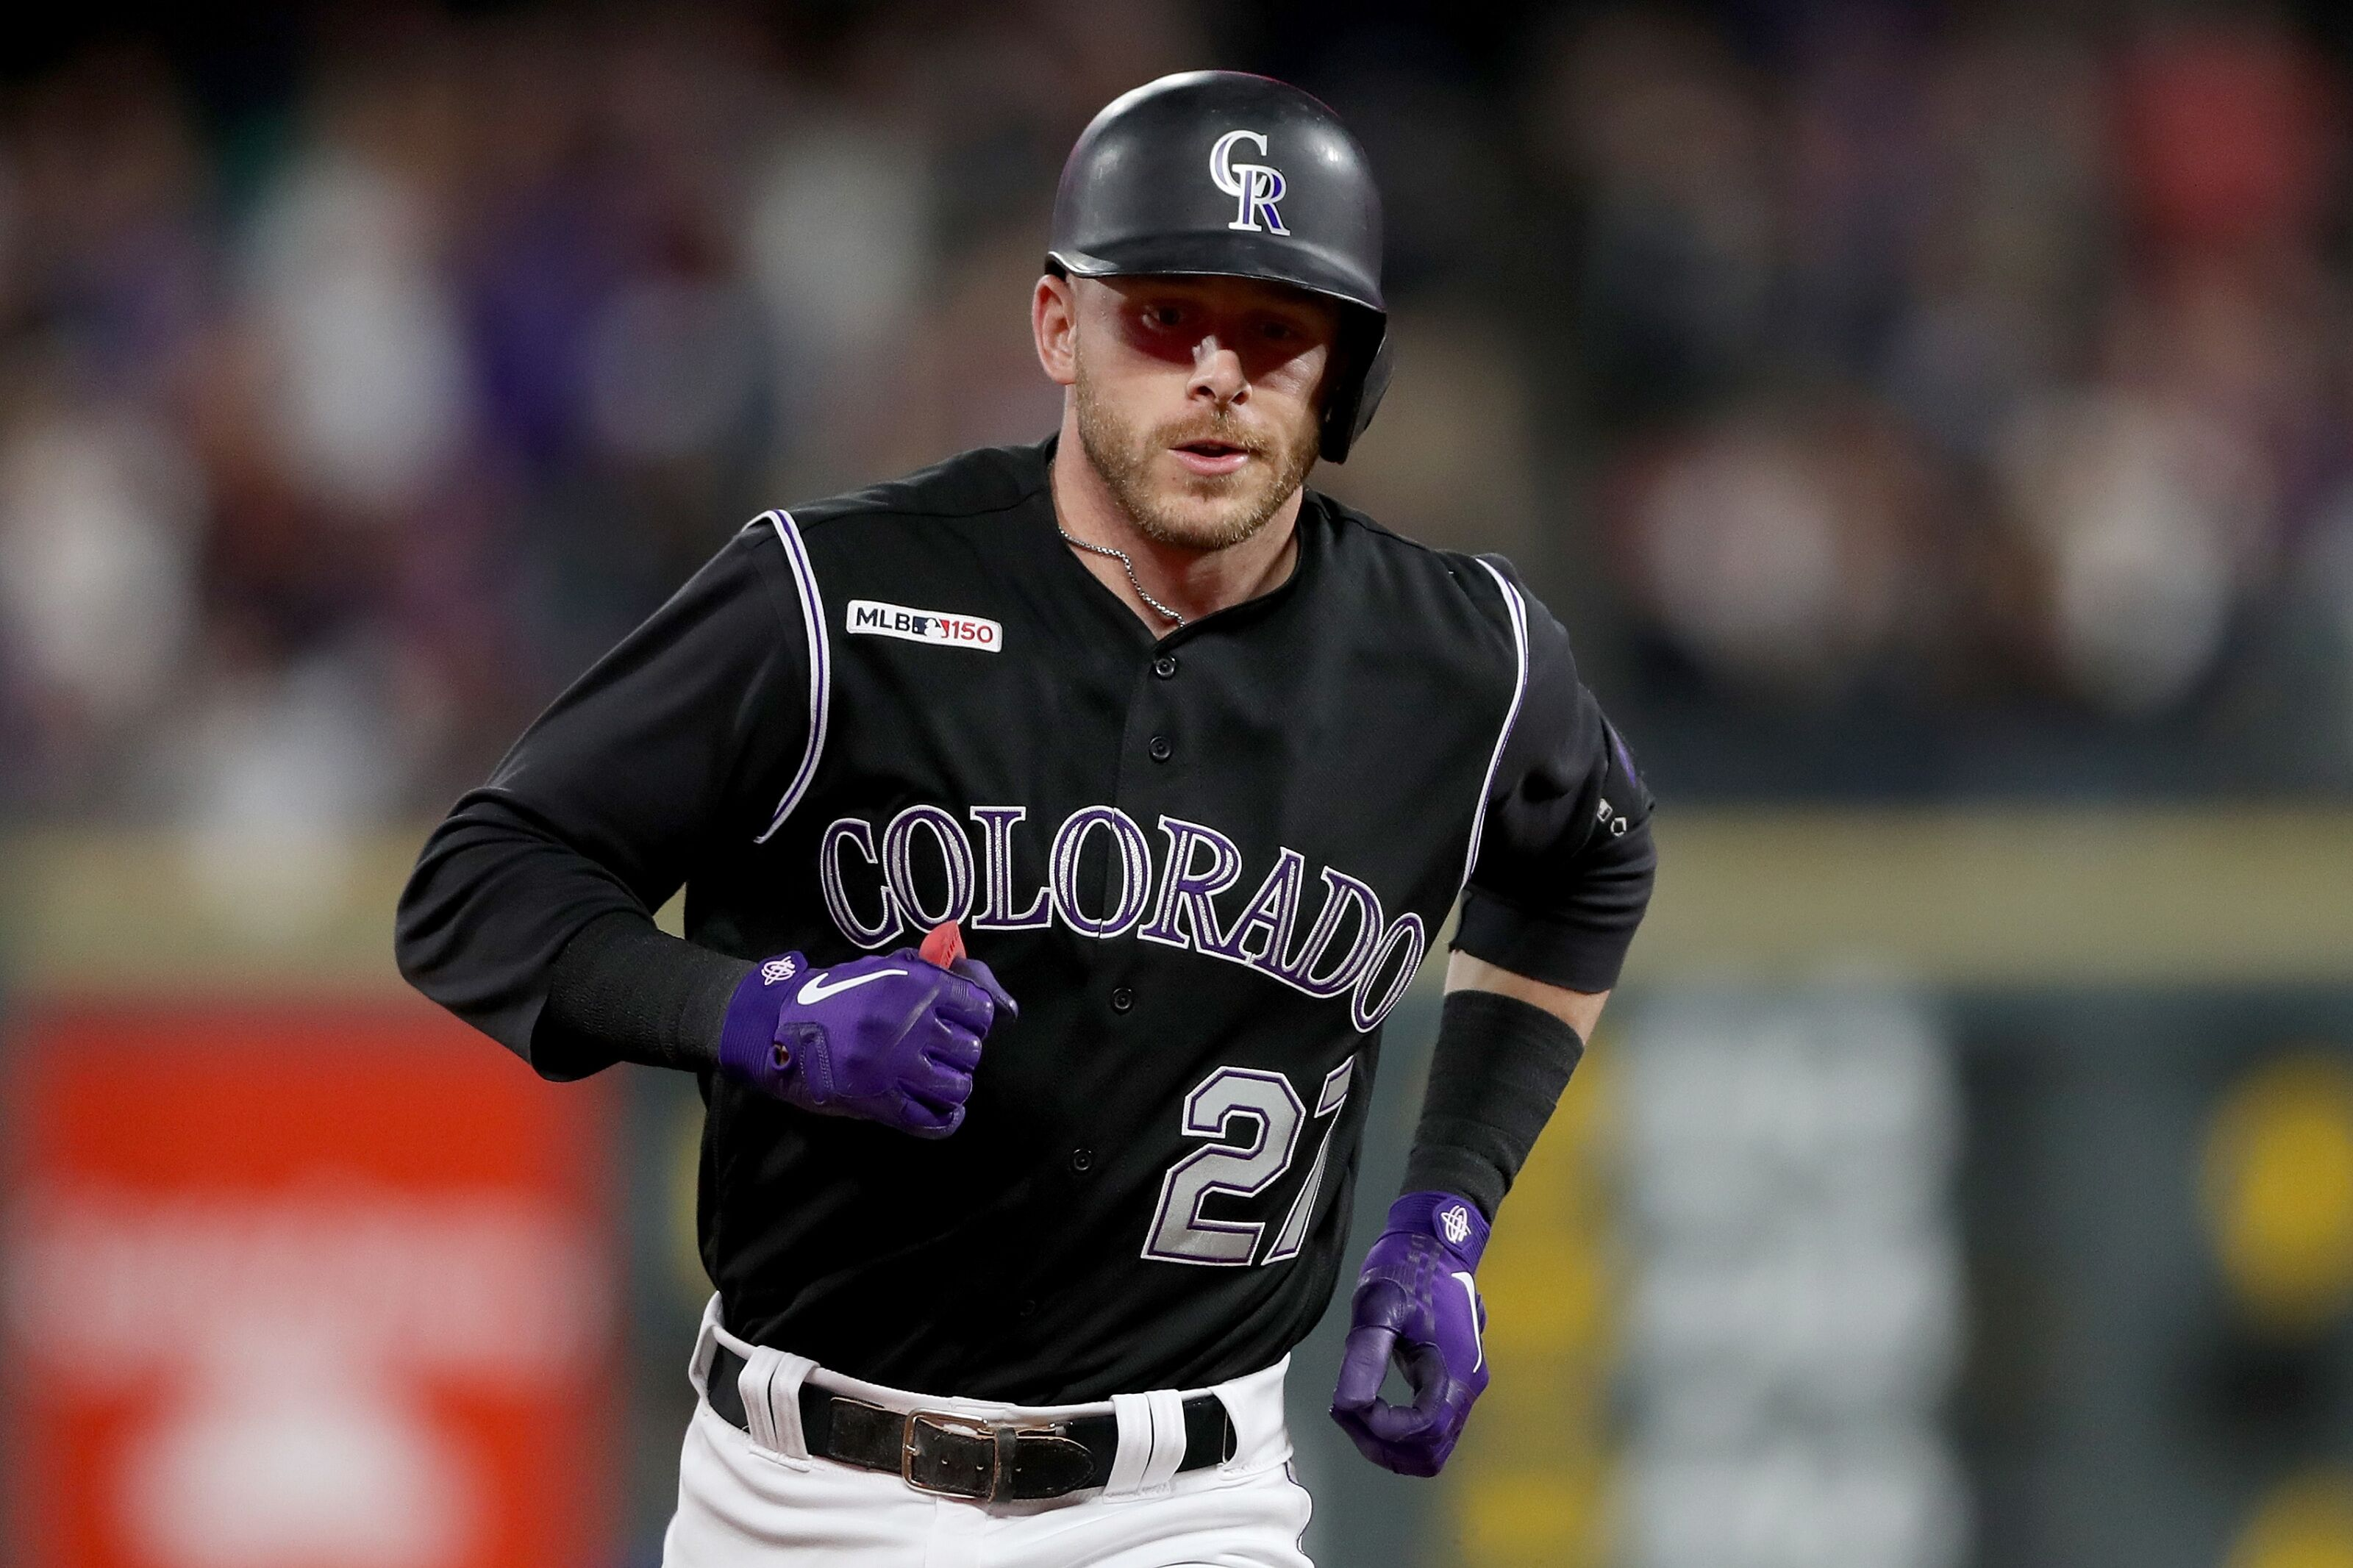 Home Run Projections 2020.Projected Arbitration Salaries For The 2020 Colorado Rockies